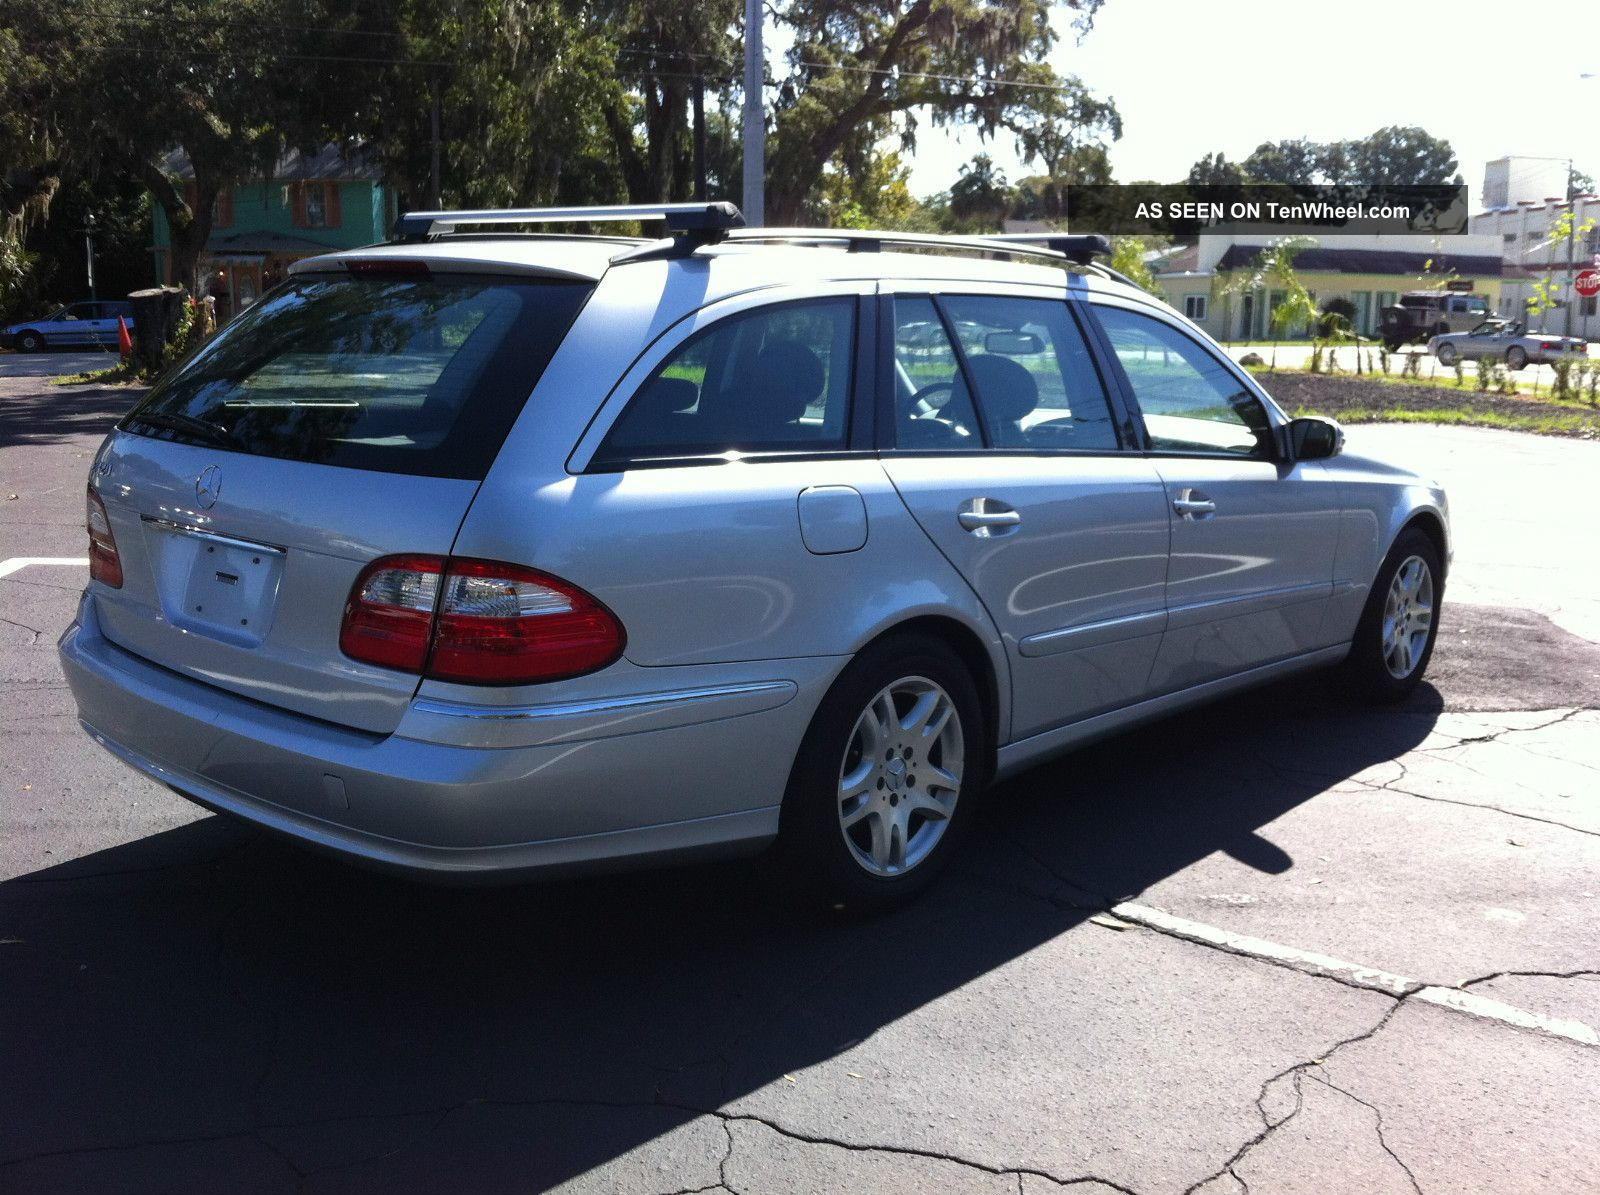 2004 mercedes benz e320 base wagon 4 door 3 2l for Mercedes benz e320 wagon